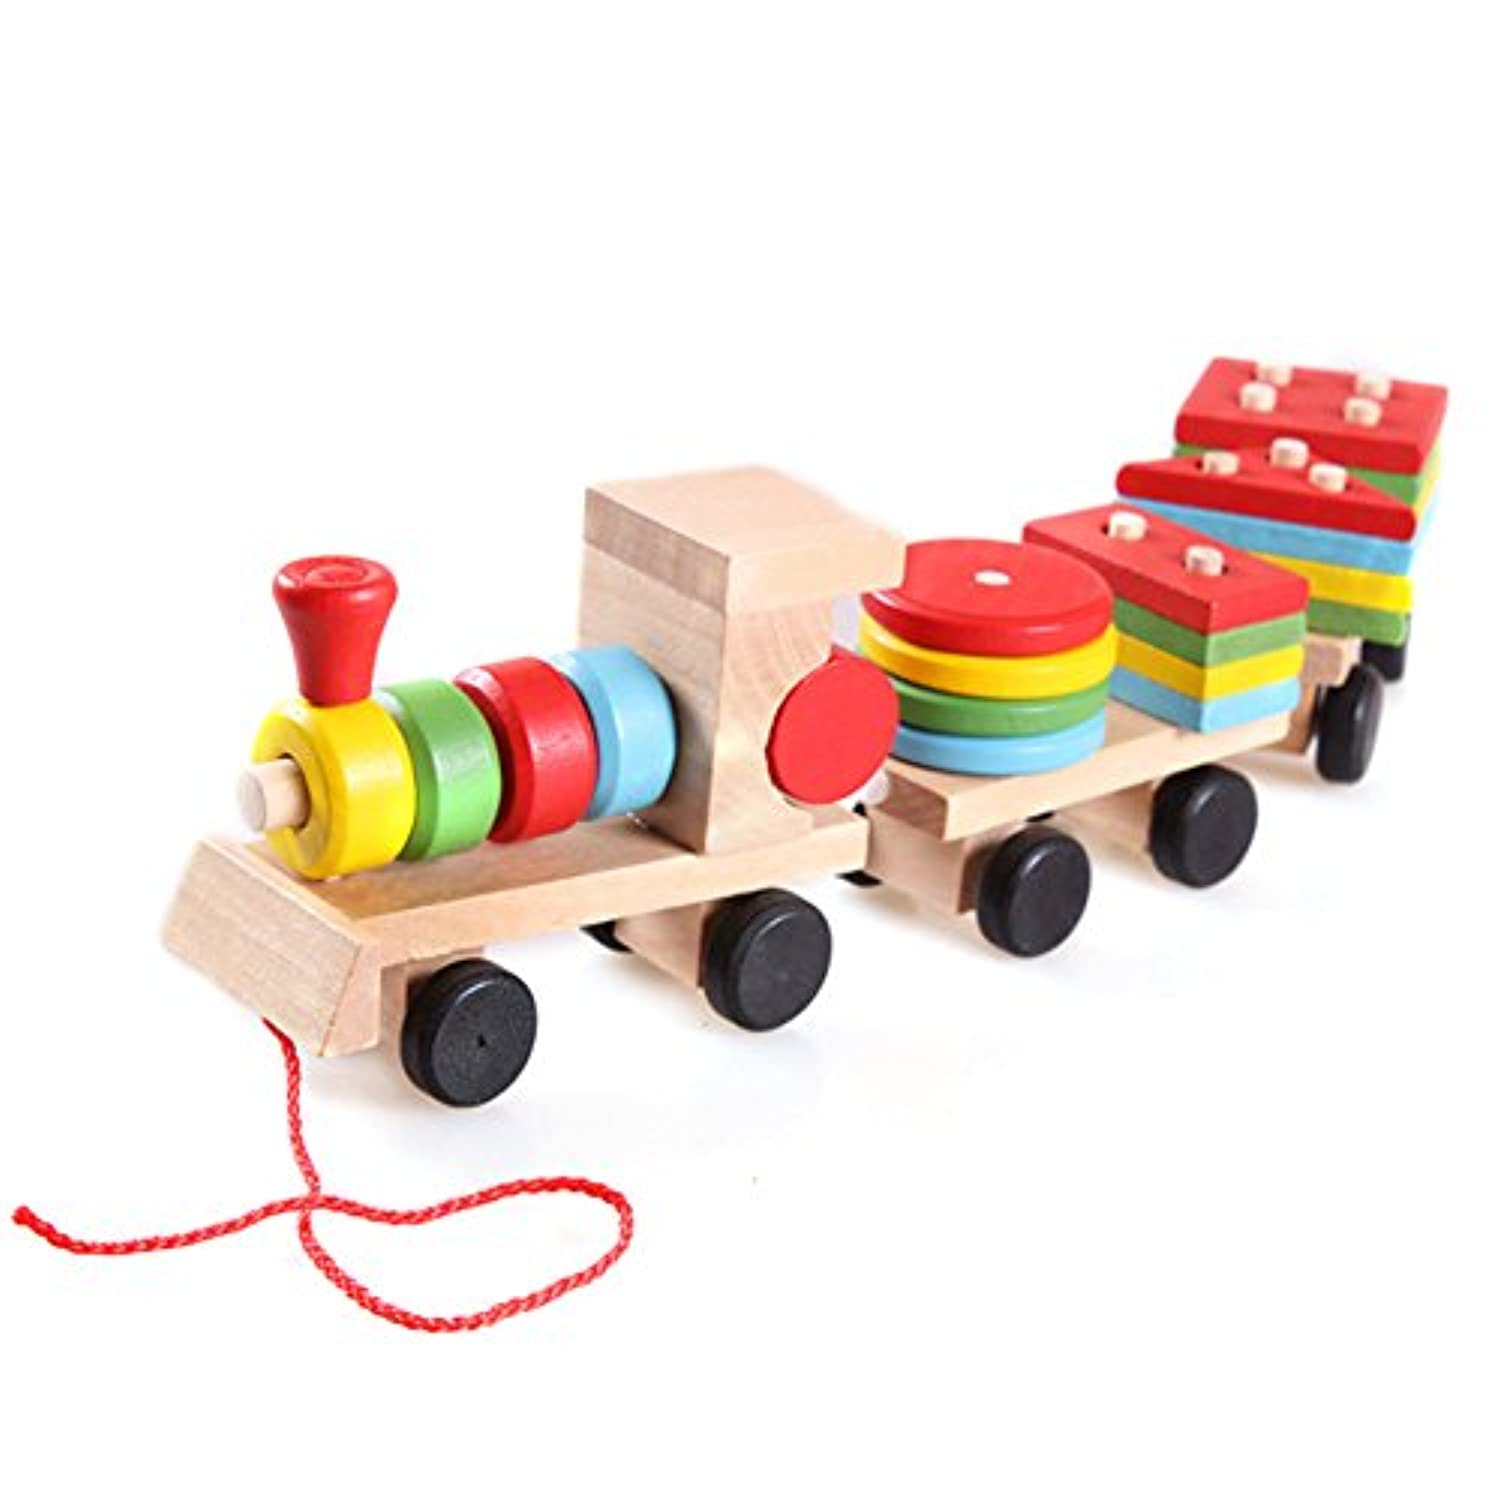 BUYITNOW Children's Wooden Stacking Train Toy Vary Shaped Puzzles Games